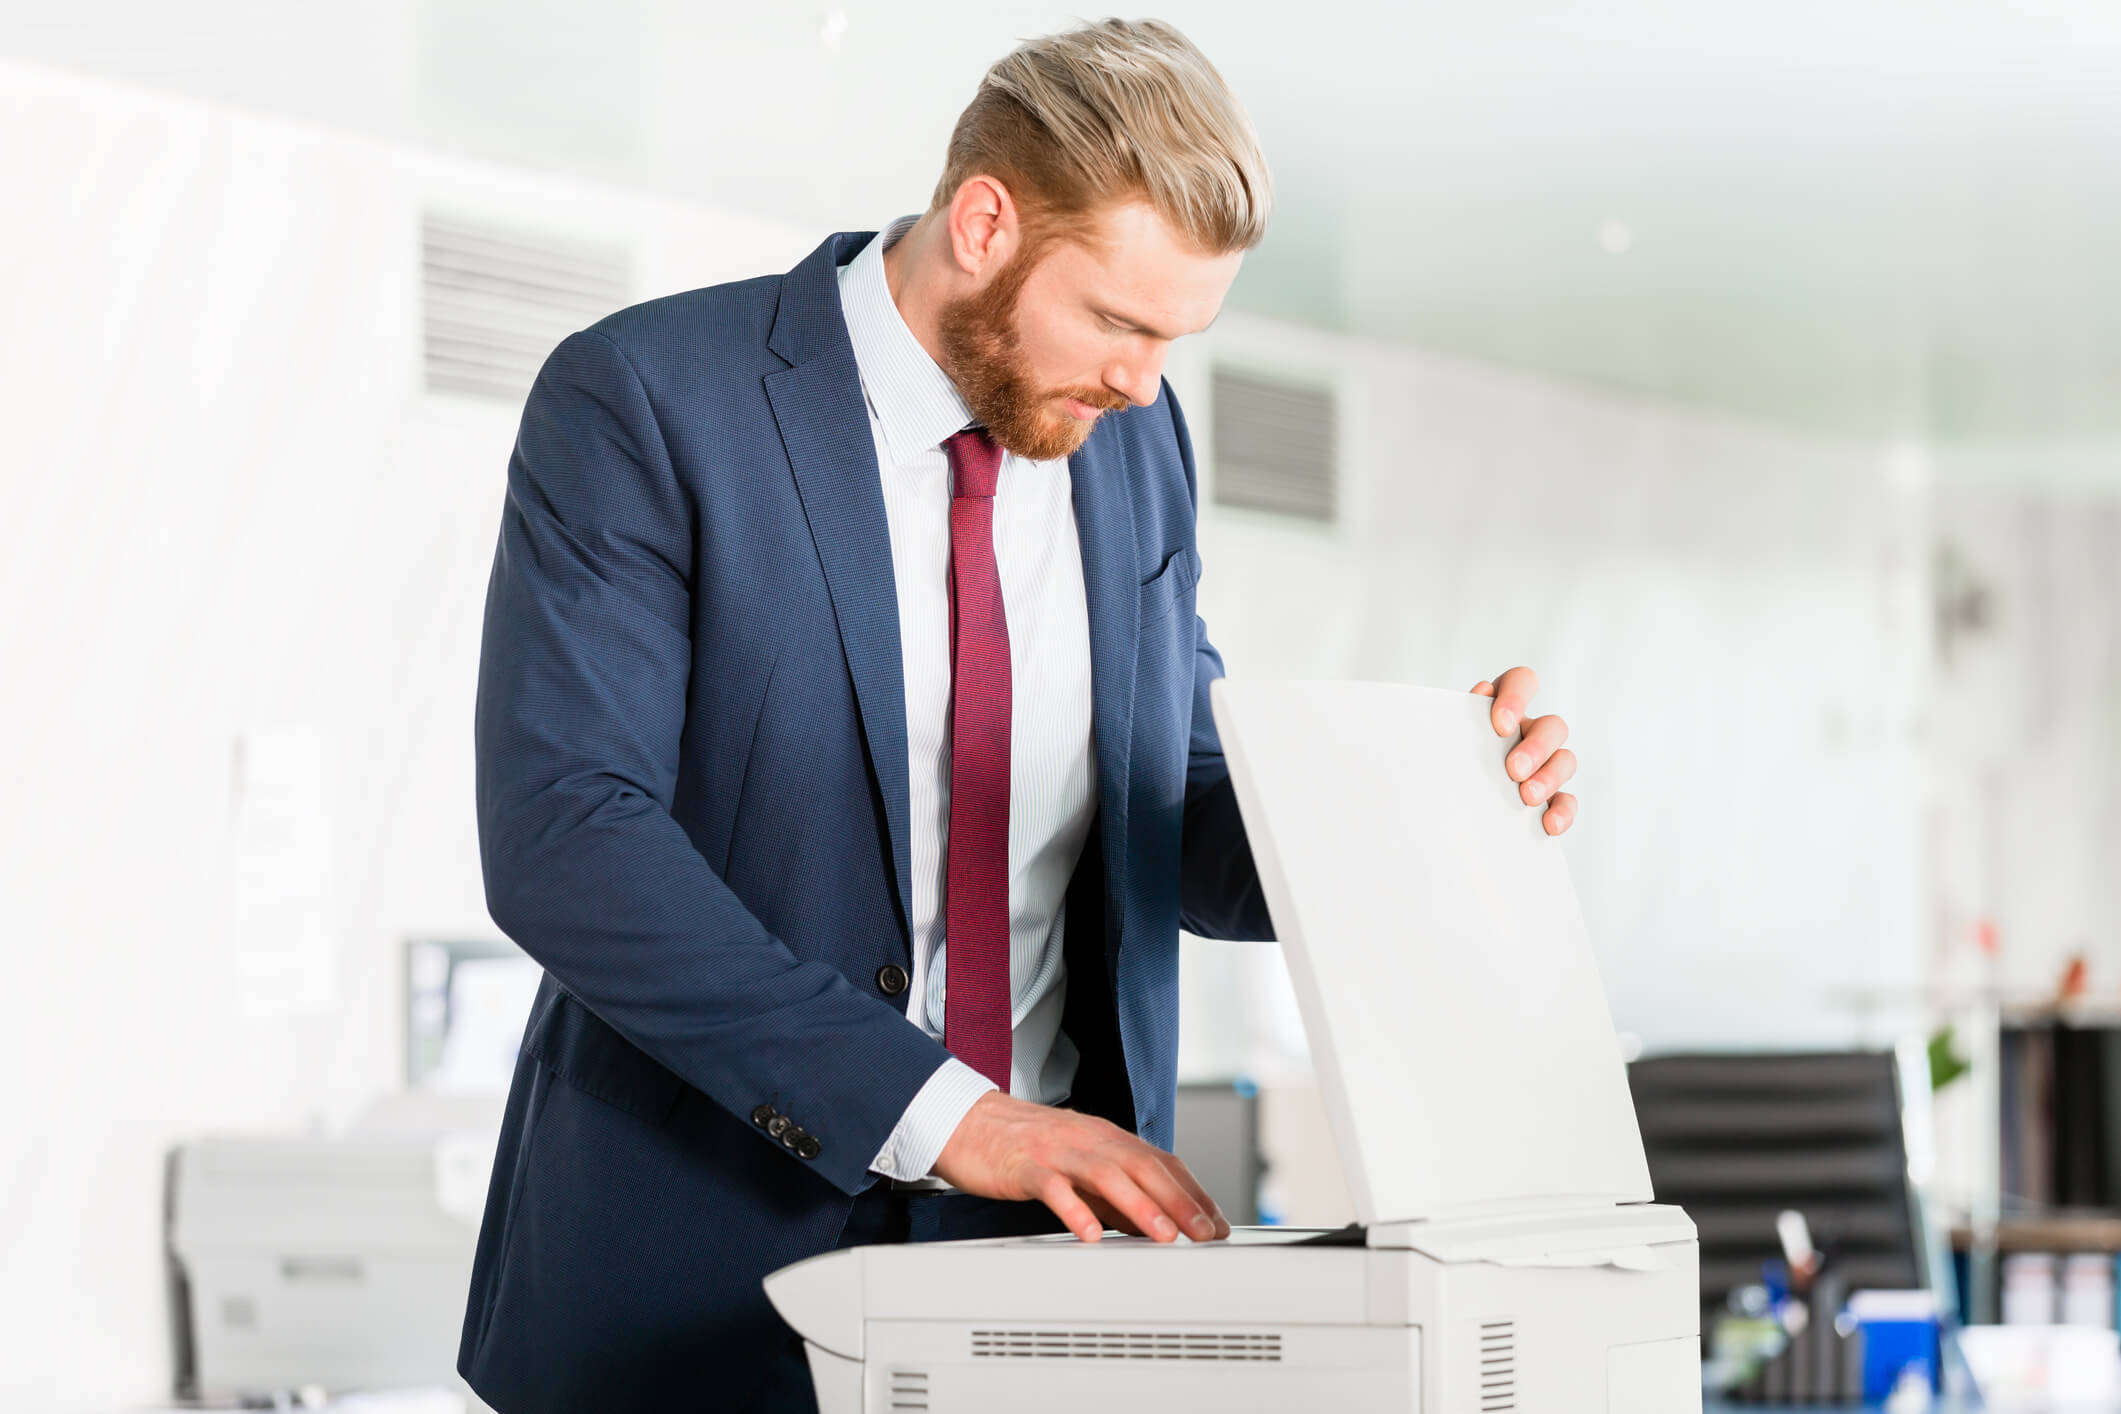 5 More Ways Law Firms Can Cut Costs Through Printer Management